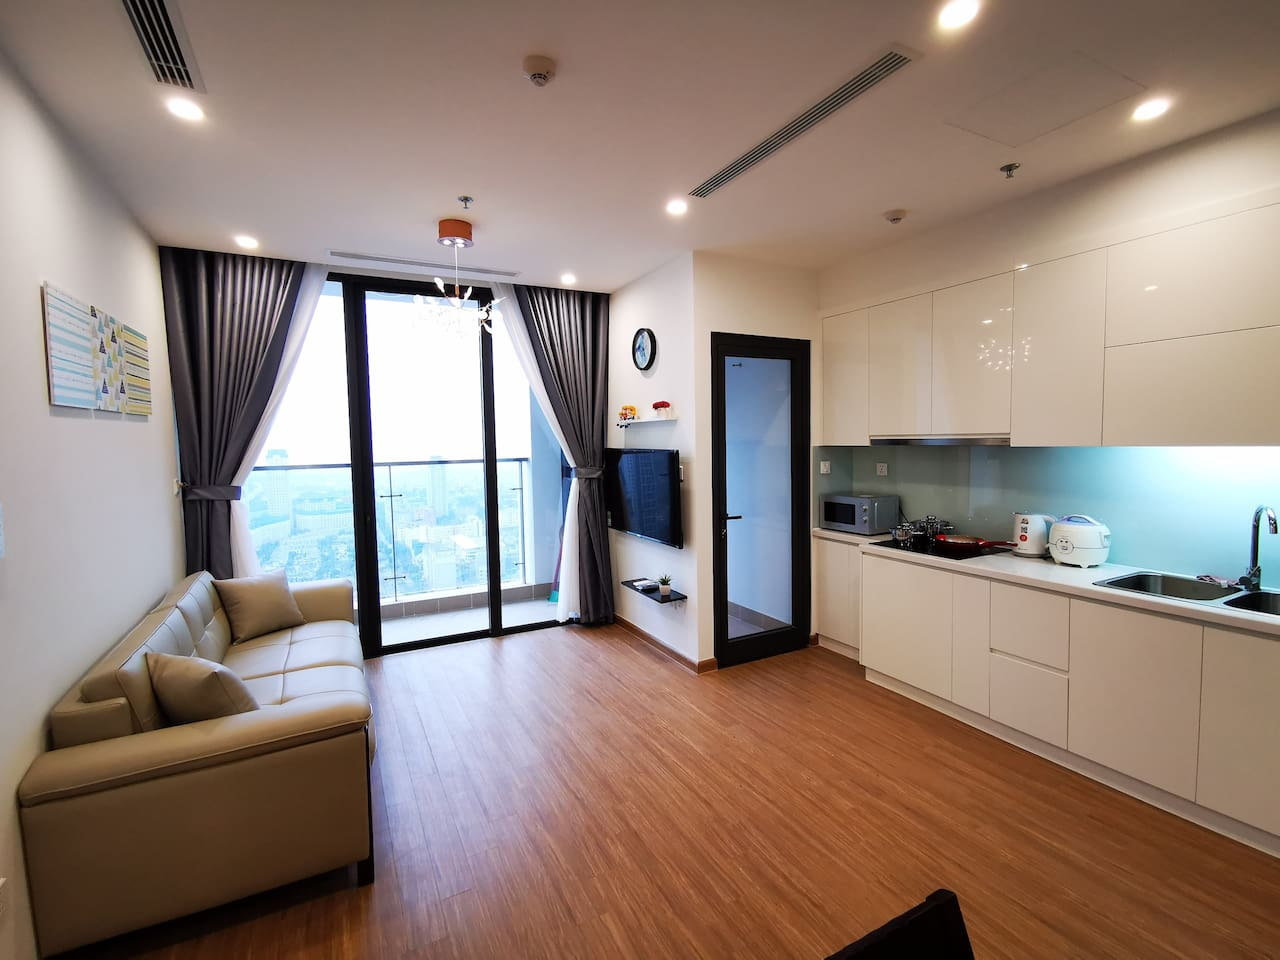 Living room has a large window and a balcony to enjoy the sunshine in daytime and sparkling building view at night. Wooden floor brings a cozy & classy style. The living room connects to kitchen (full kitchenette) and another entrance to the balcony.